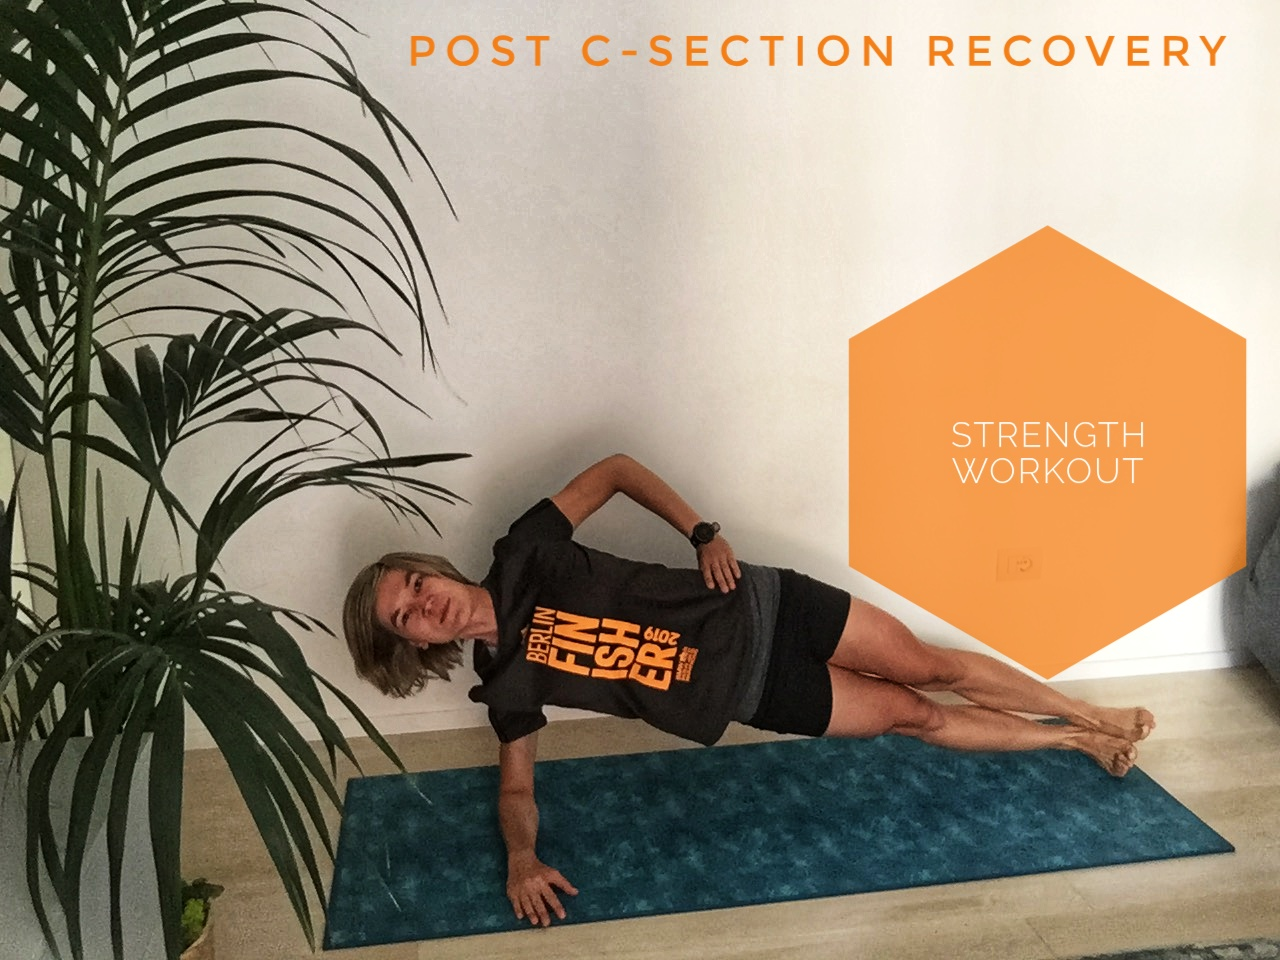 Post C-section Recovery